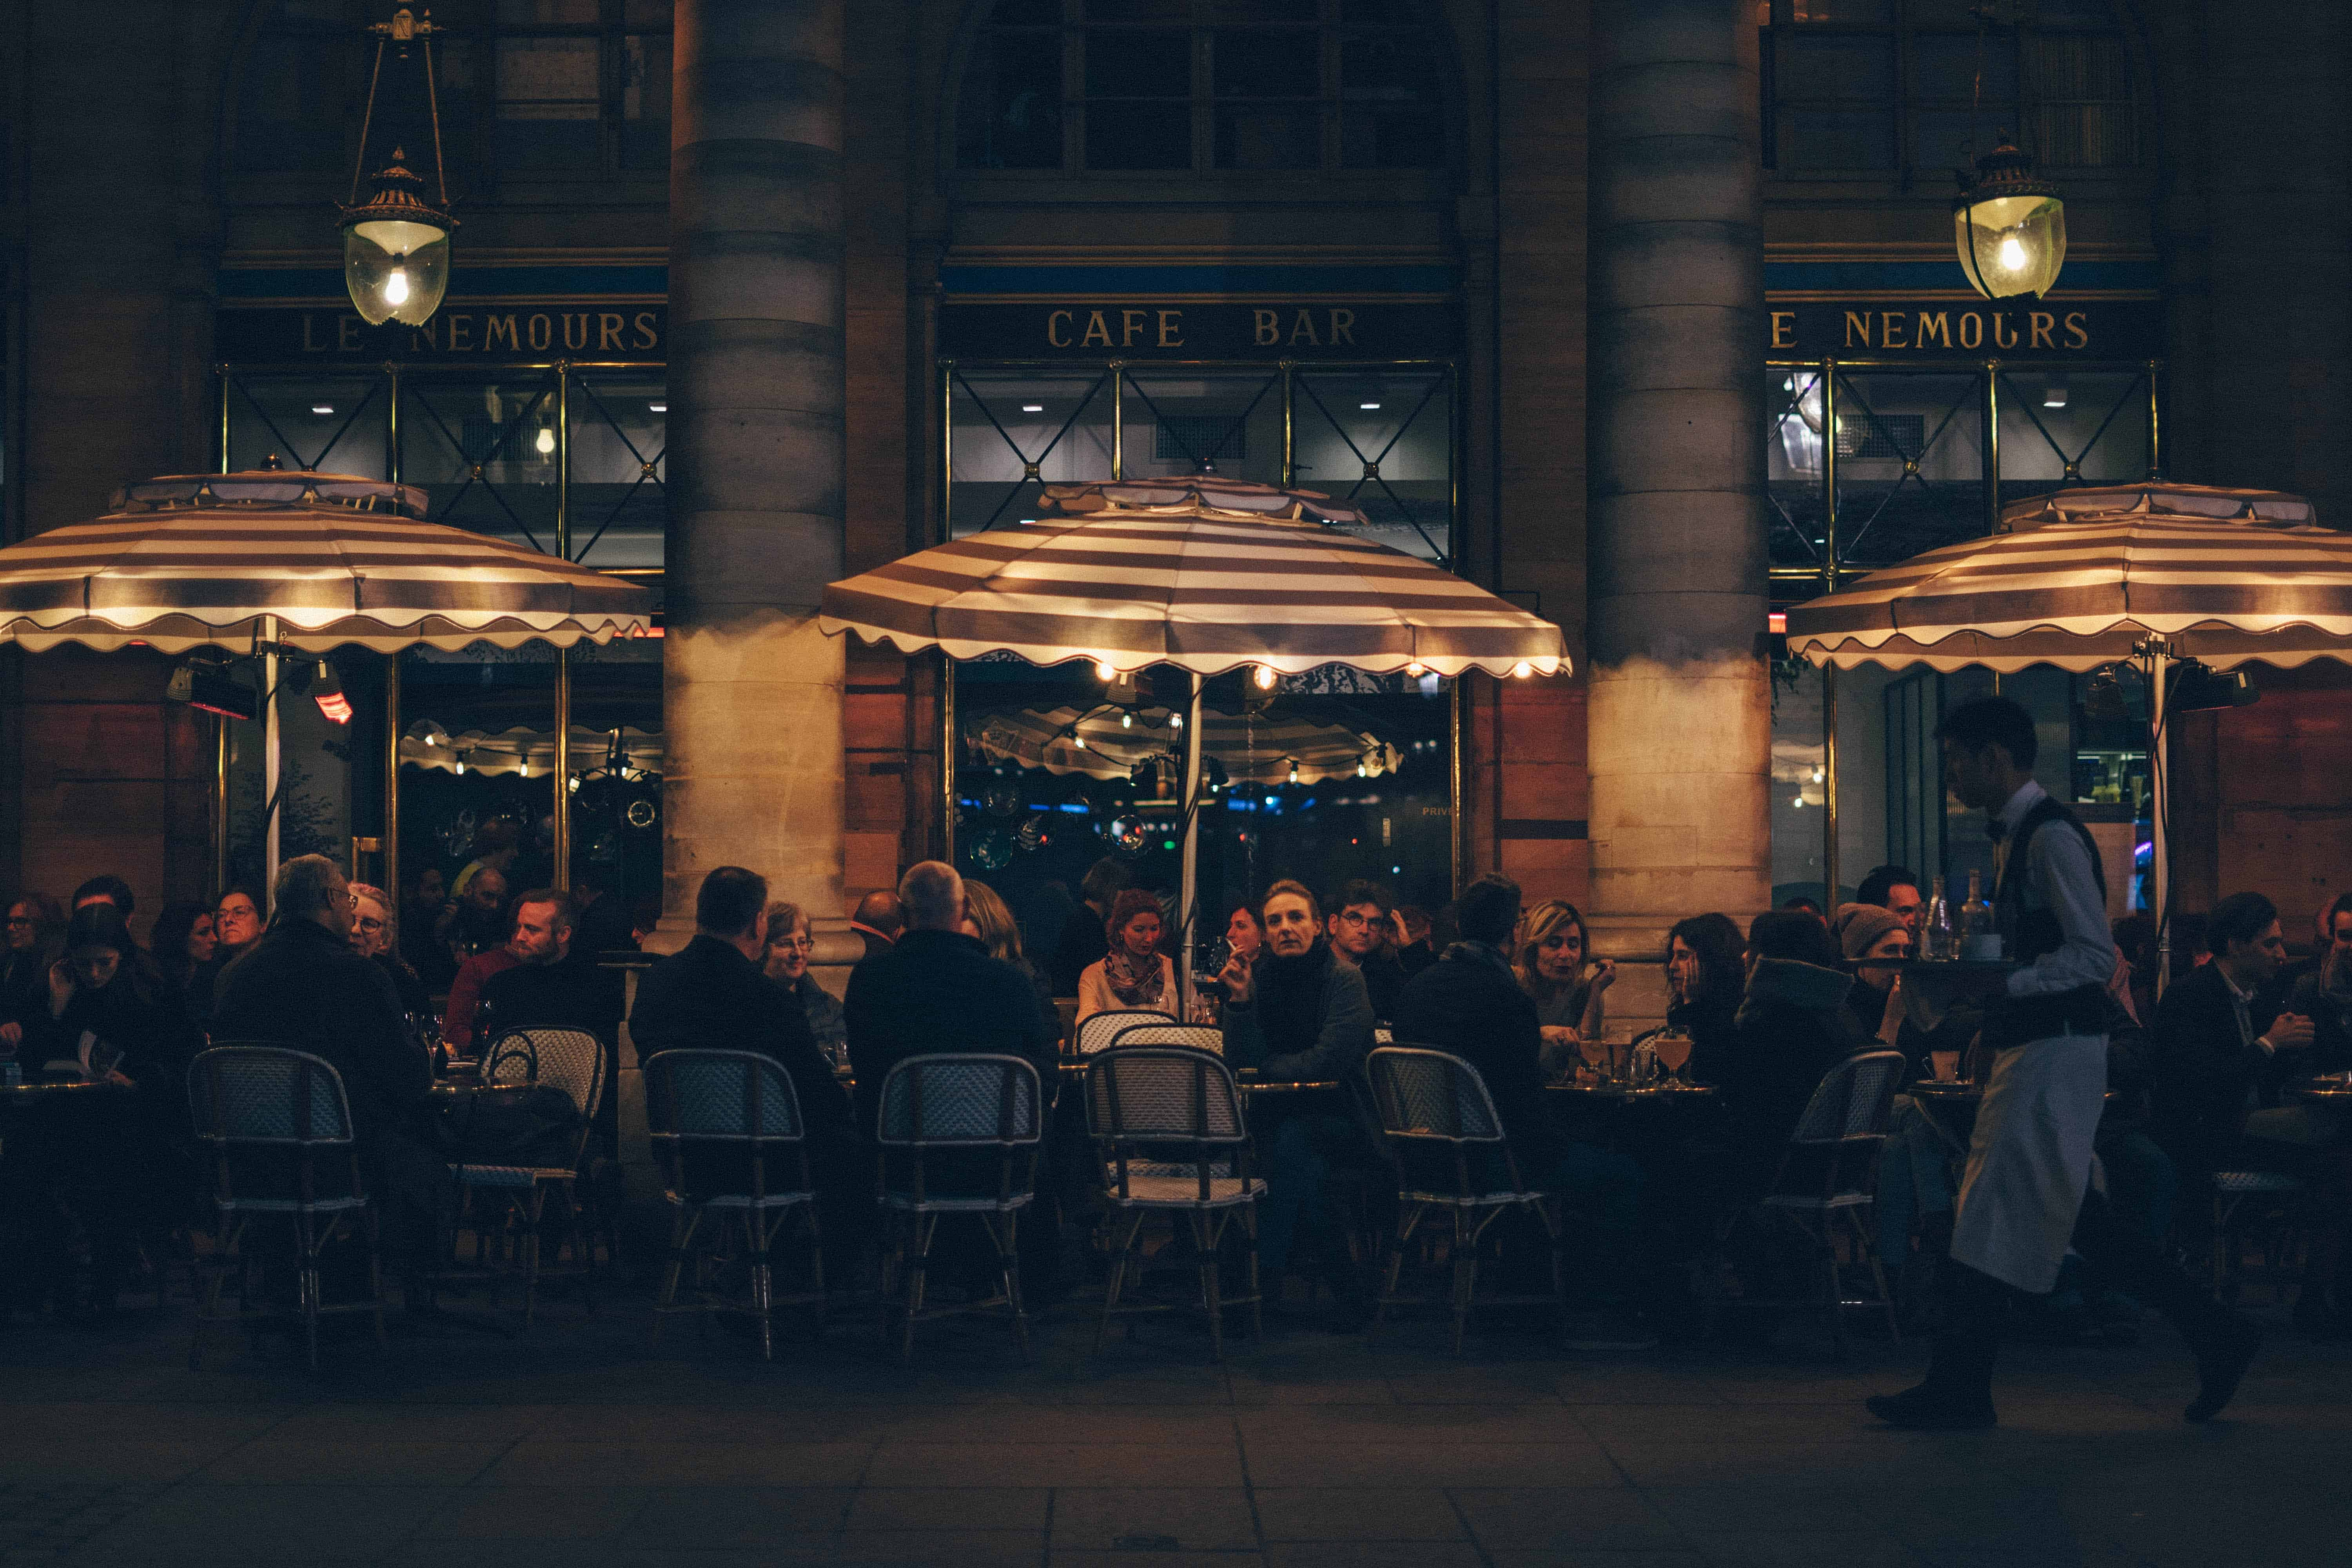 jonathan nguyen XwO0raJ2dQM unsplash - Do These 10 Things to Keep Your Patrons Coming Back To Your Restaurant